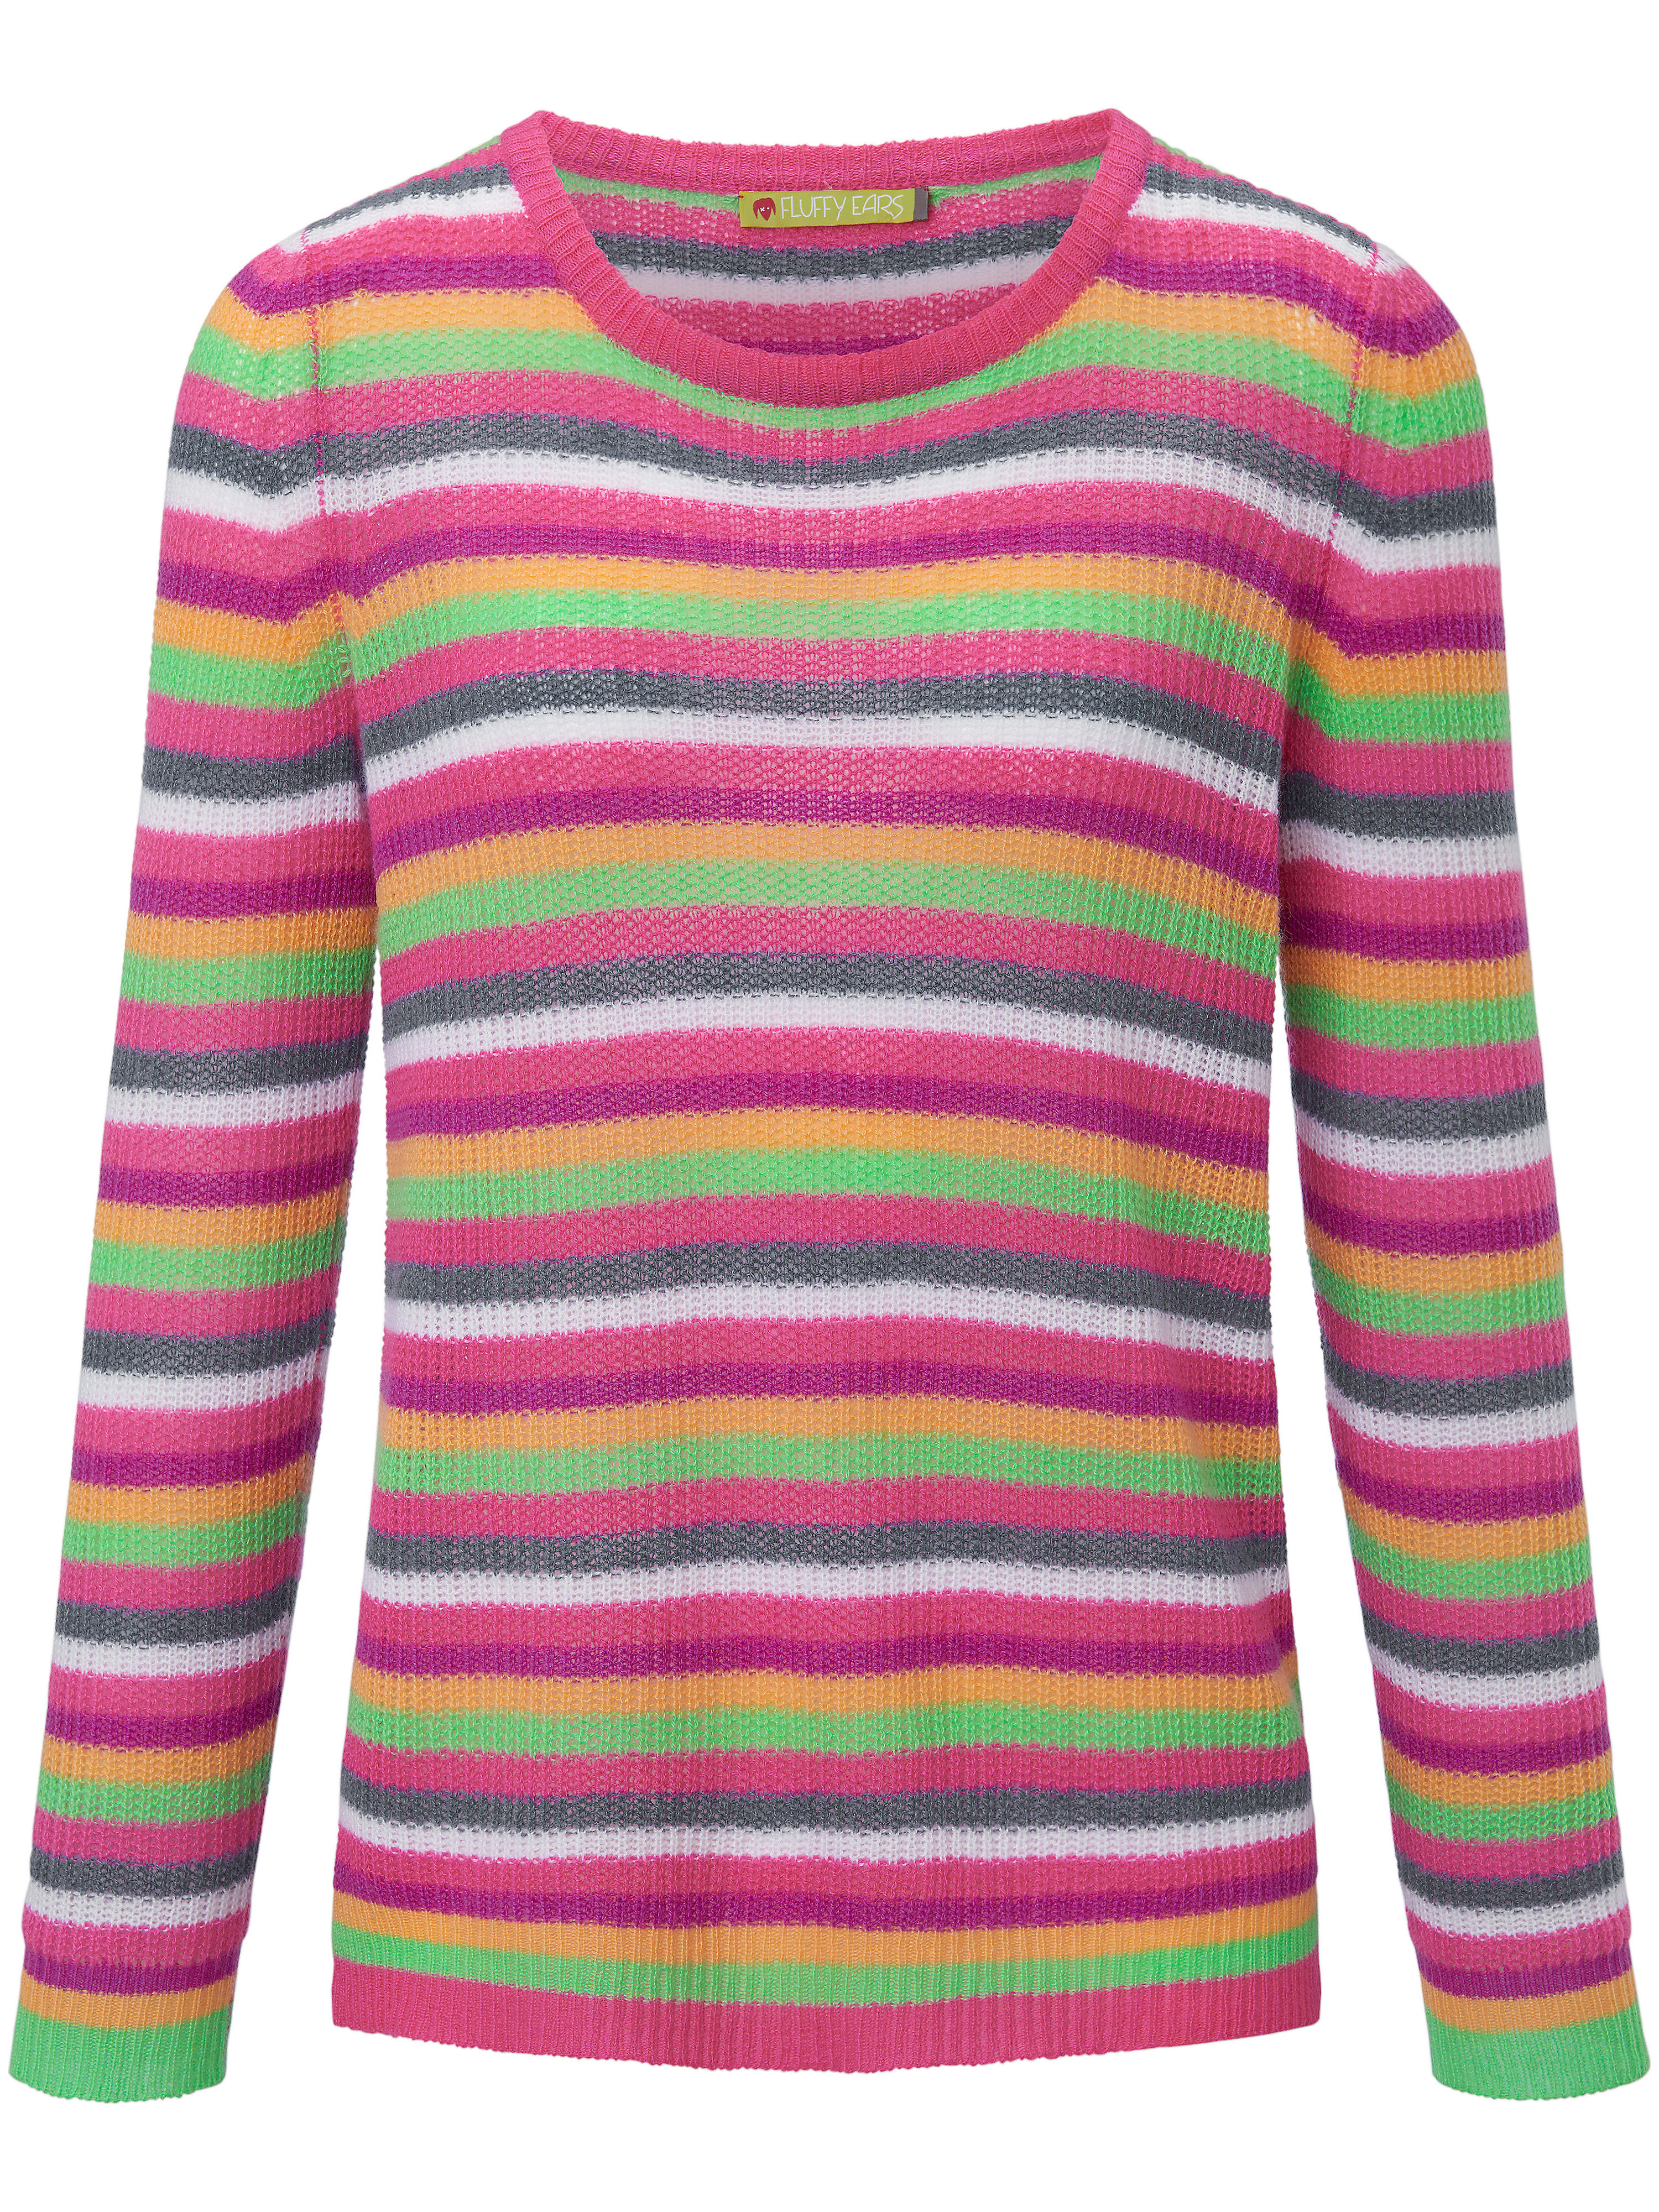 Le pull 100% cachemire  FLUFFY EARS multicolore taille 50